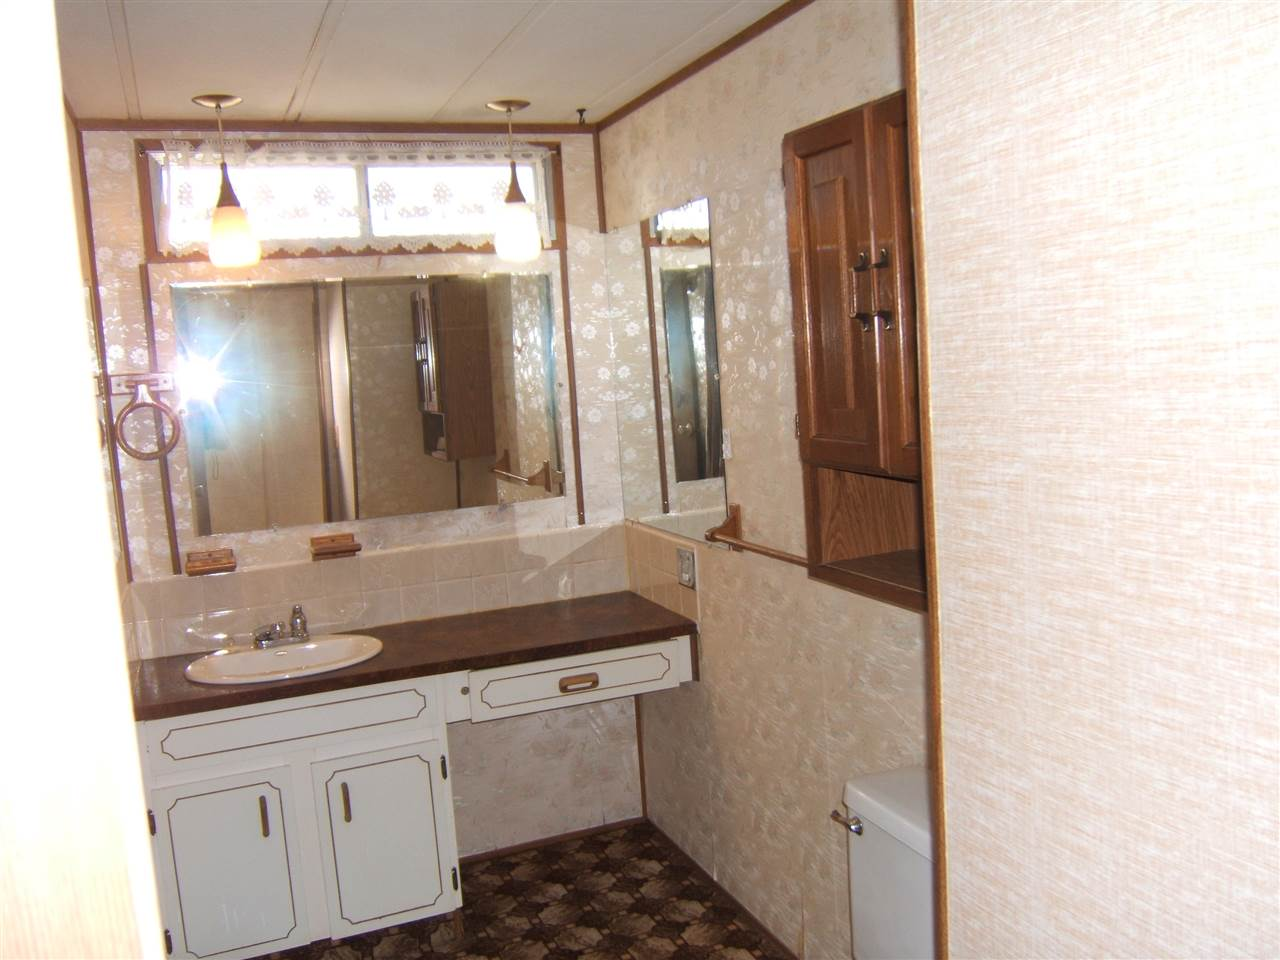 Enjoy Quiet Living In Prairie Lodge Trailer Park Located On The Out Skirts Of Progressive Town Vegreville This 1976 Neonex 896 Sq Ft